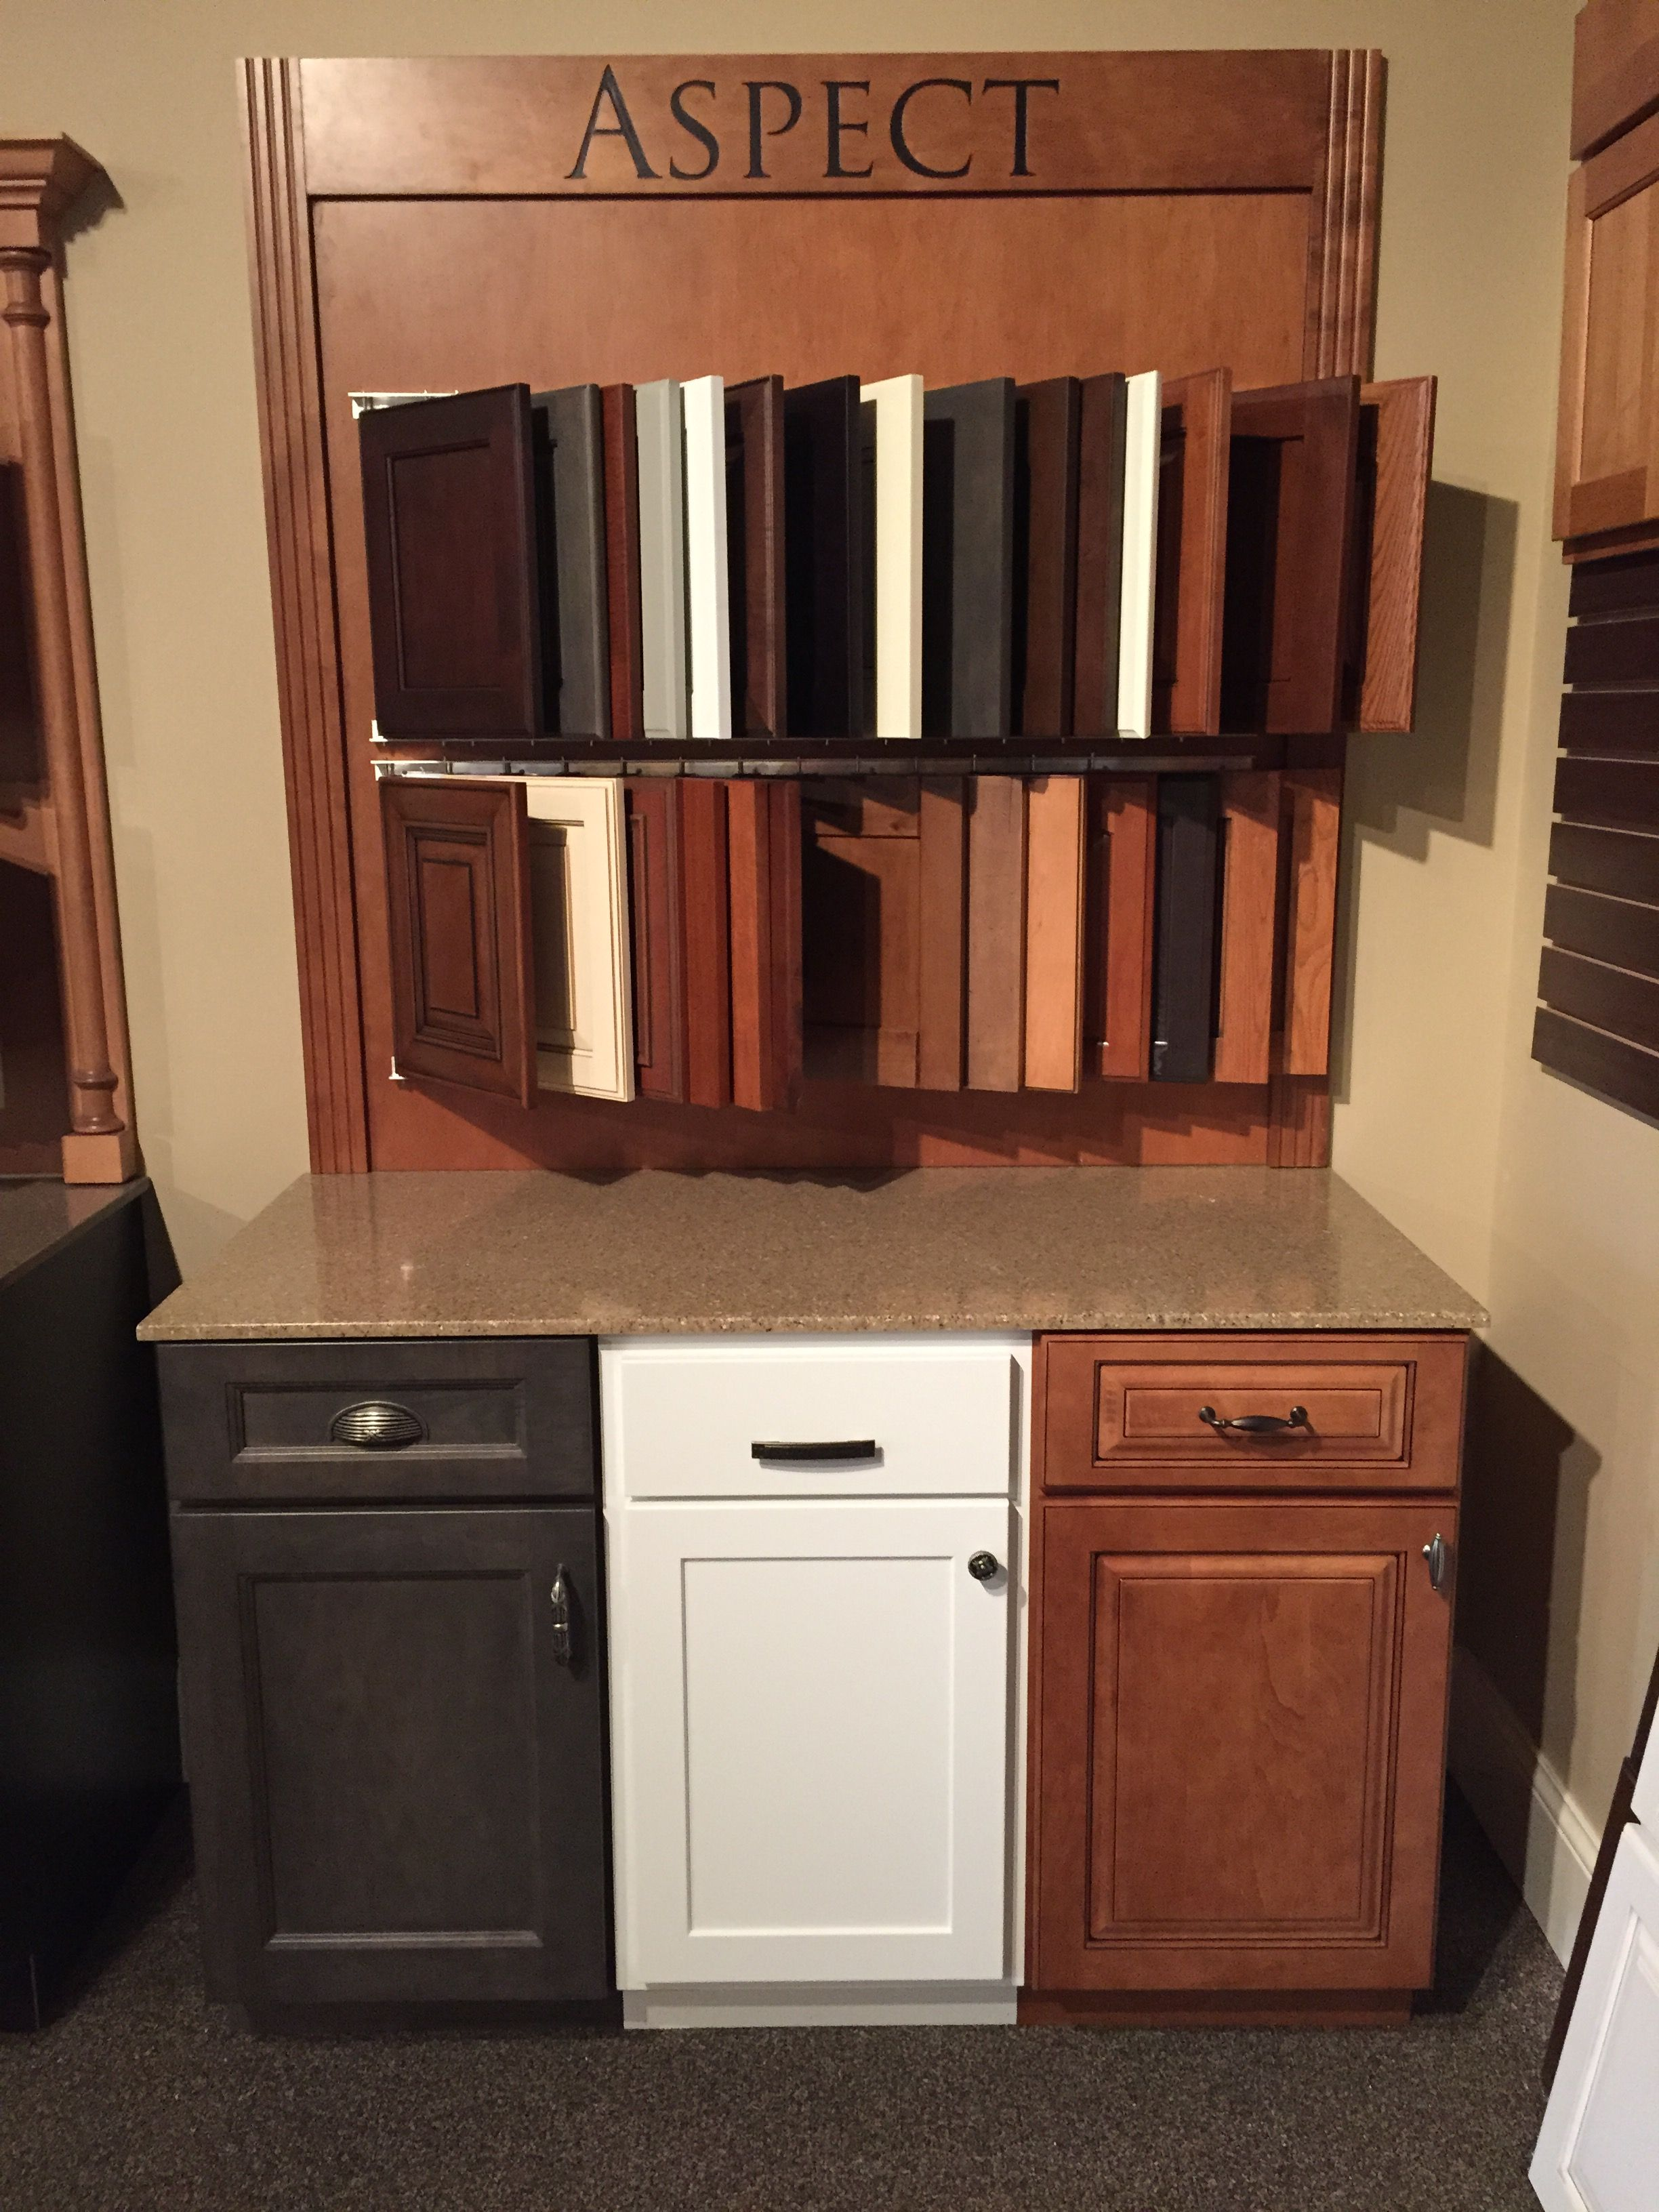 Best Aspect Cabinets With Images Custom Kitchen Cabinet 400 x 300